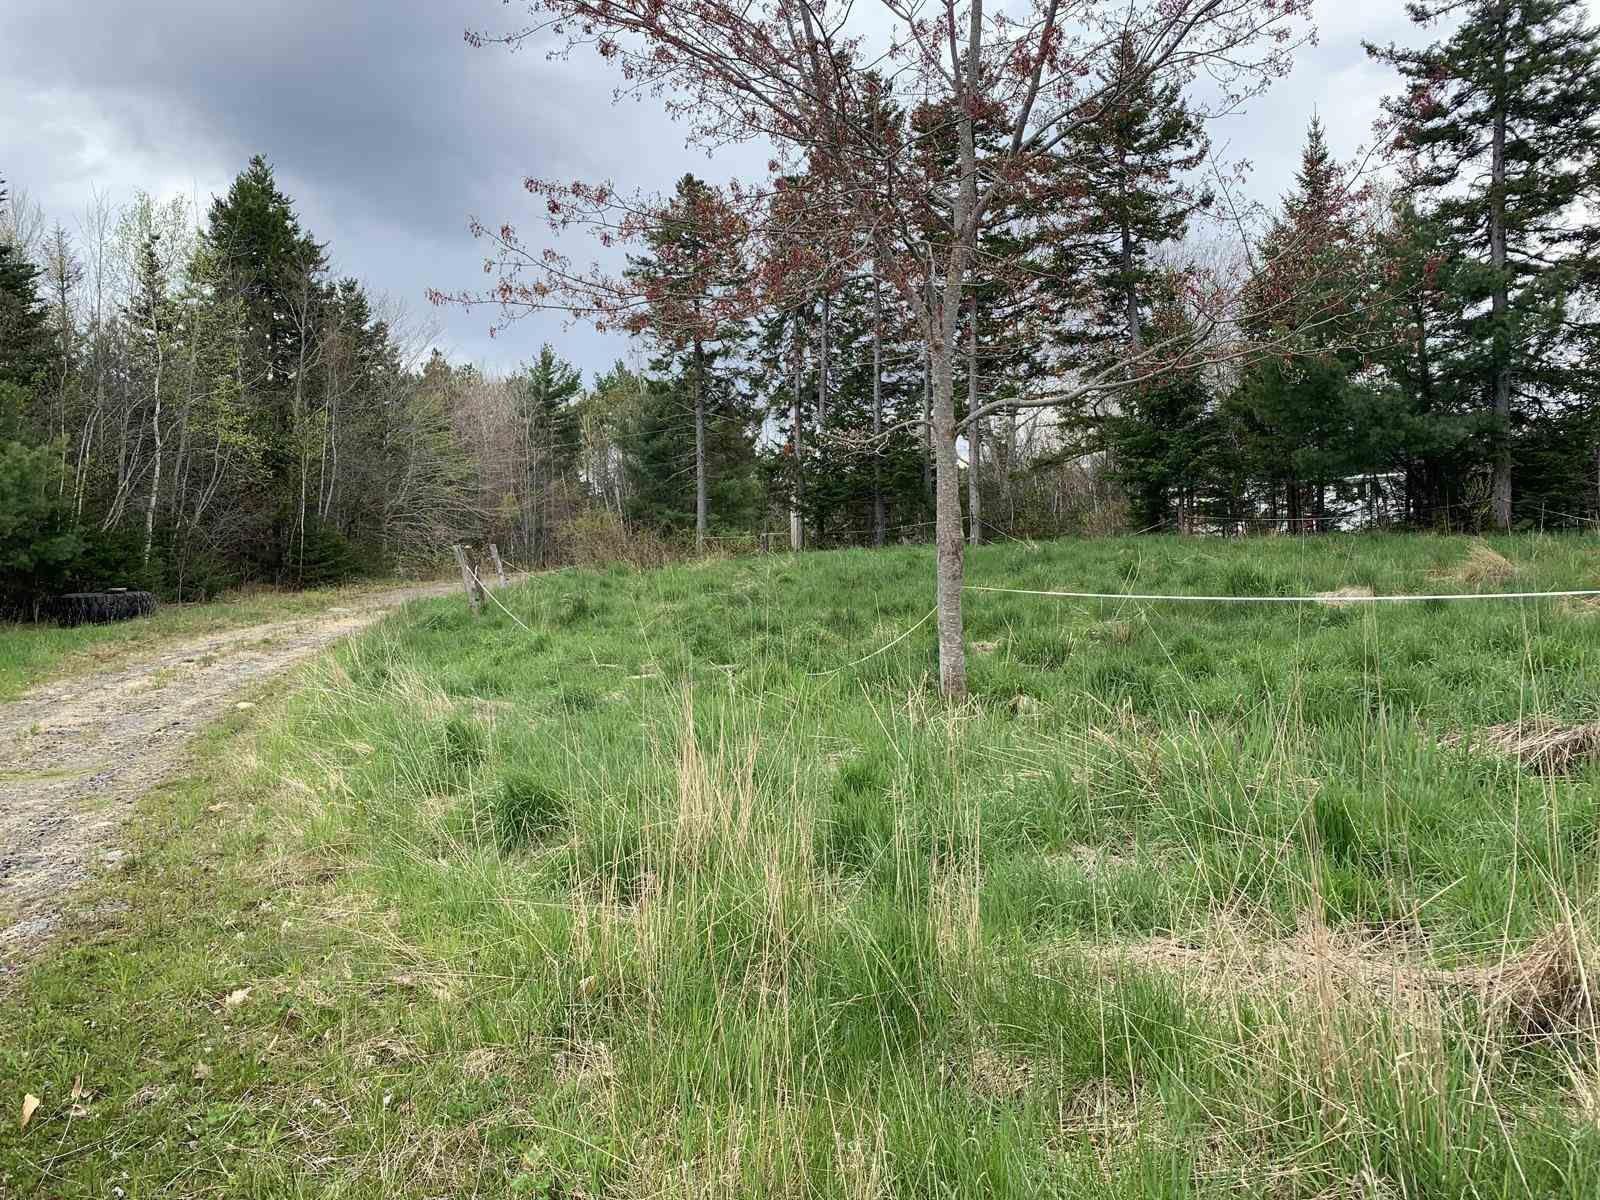 Main Photo: 92 Mines 2 Road in Hebbs Cross: 405-Lunenburg County Vacant Land for sale (South Shore)  : MLS®# 202111484